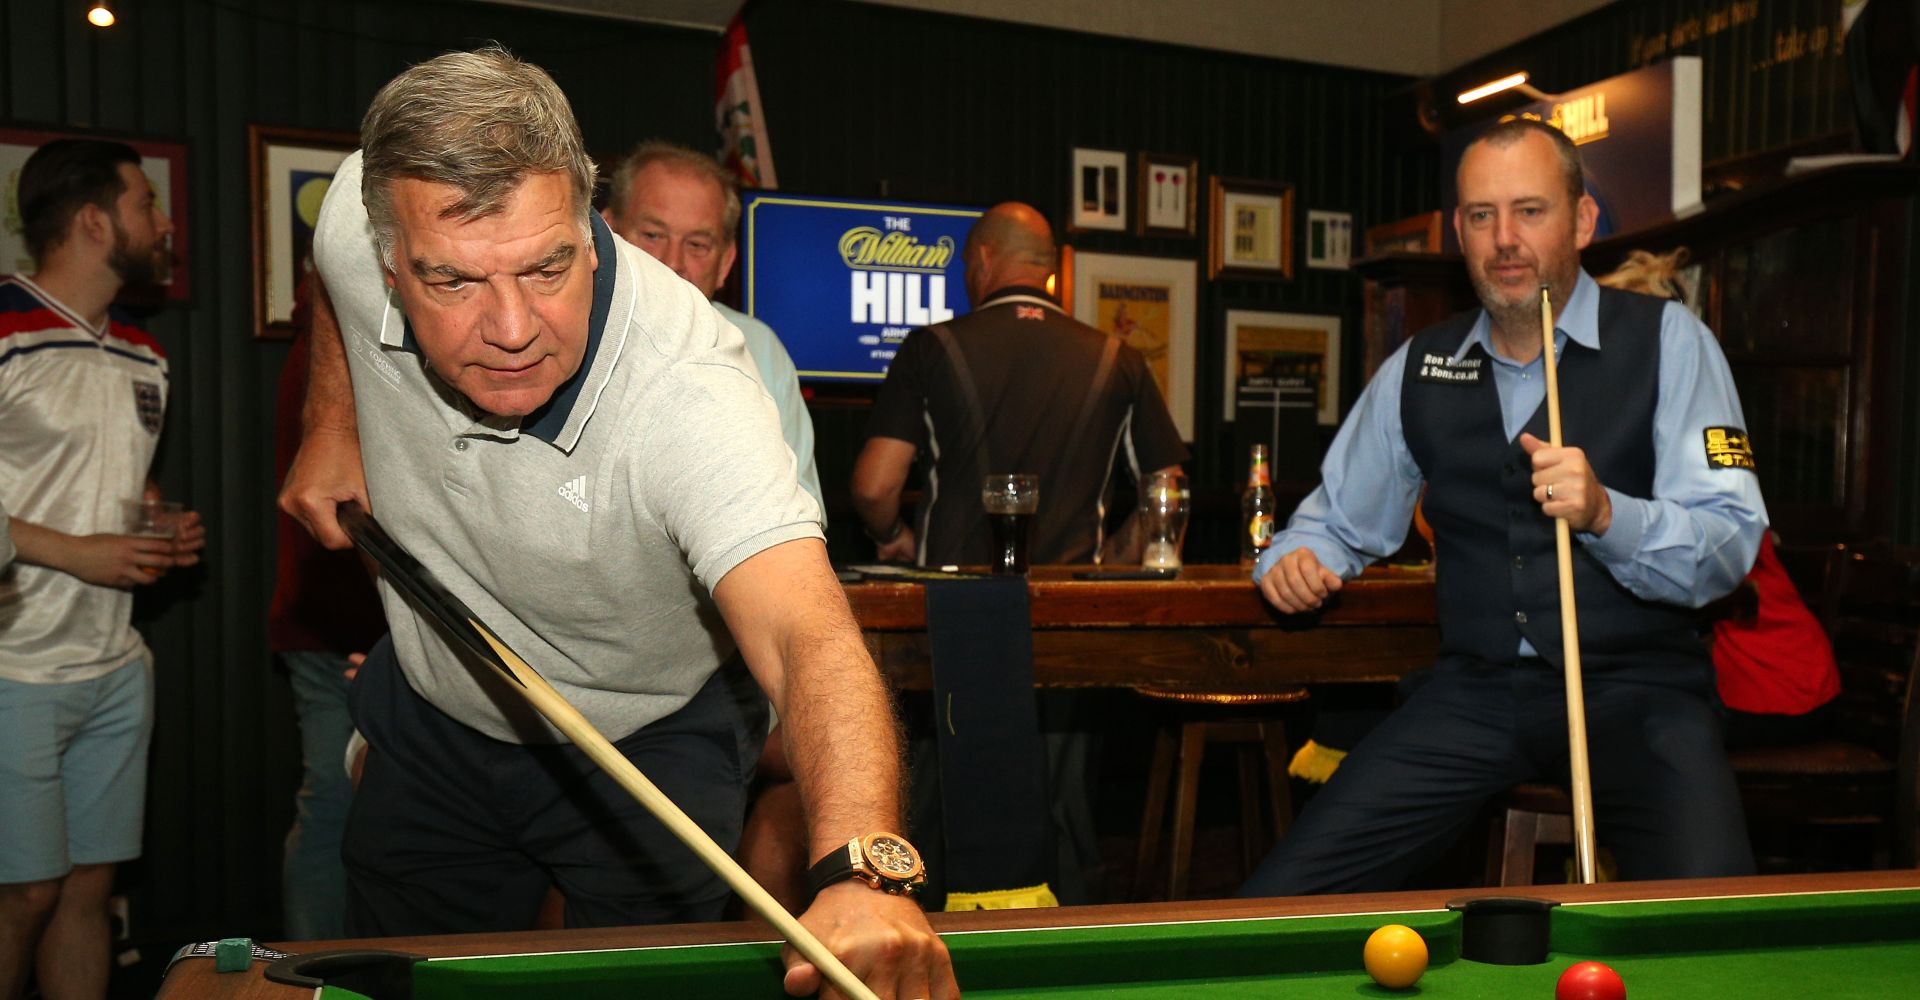 Big Sam playing pool at the William Hill Arms